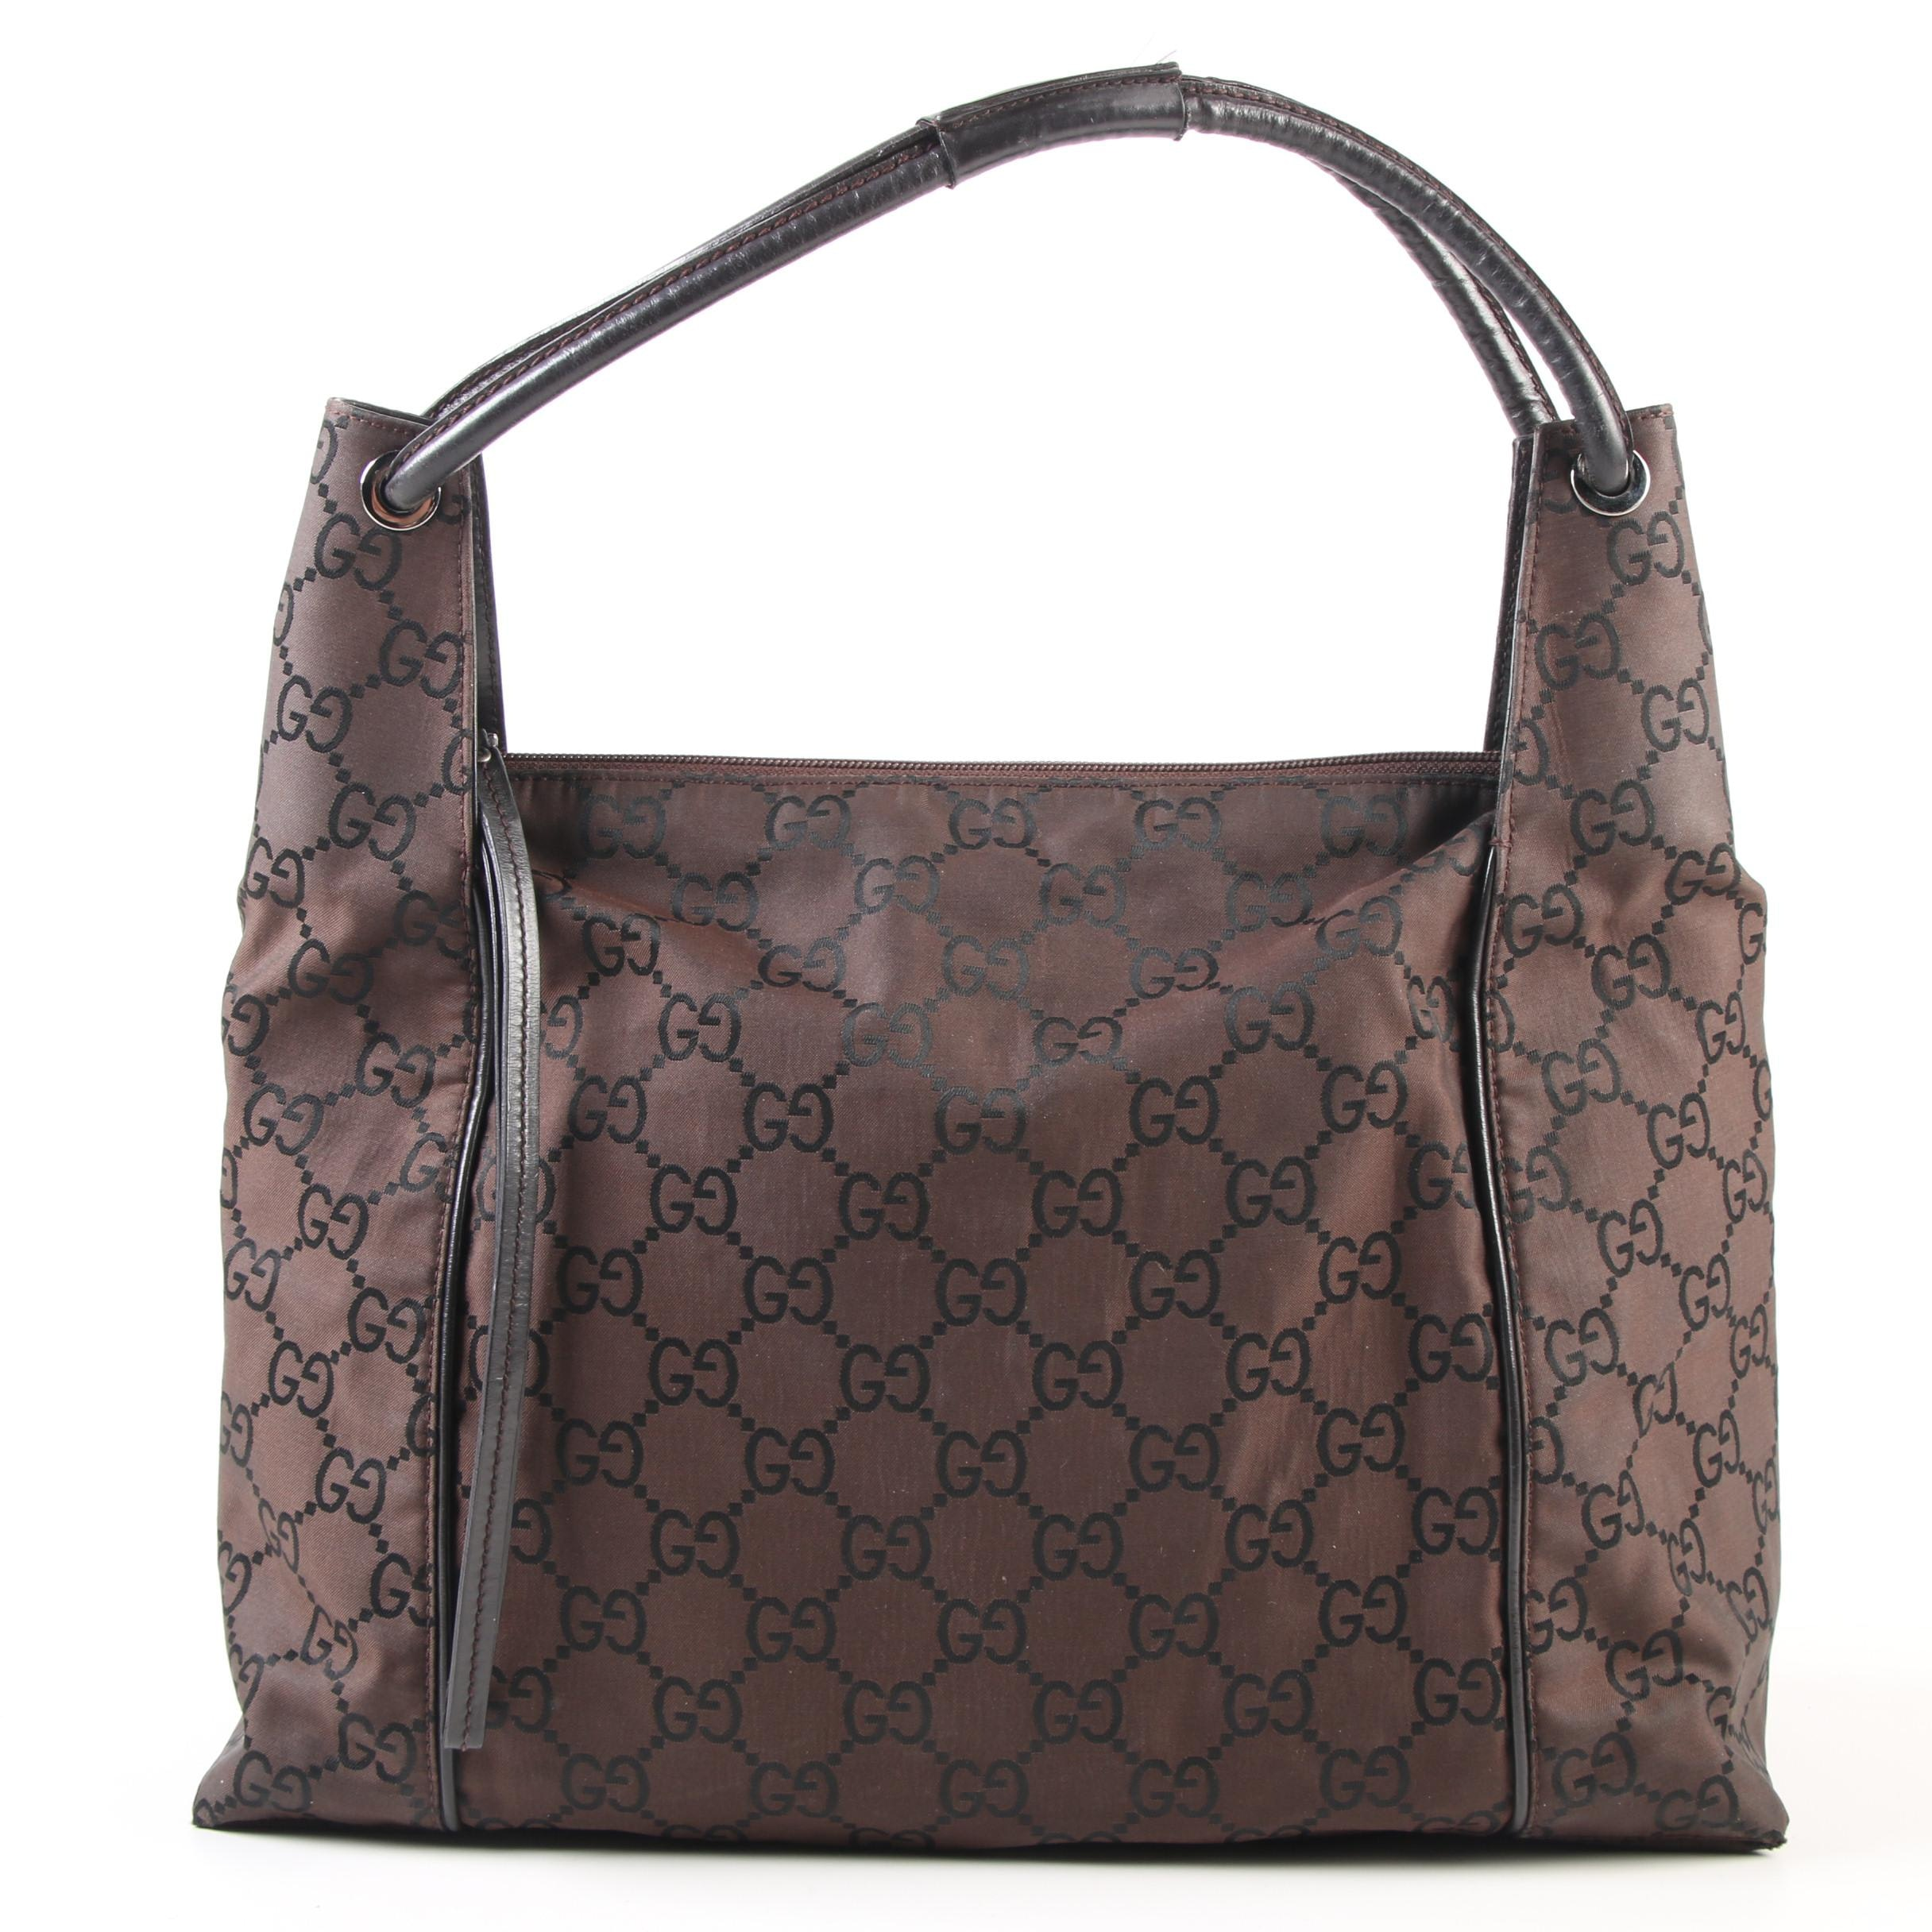 Gucci Brown GG Canvas and Leather Shoulder Bag Accented in Black